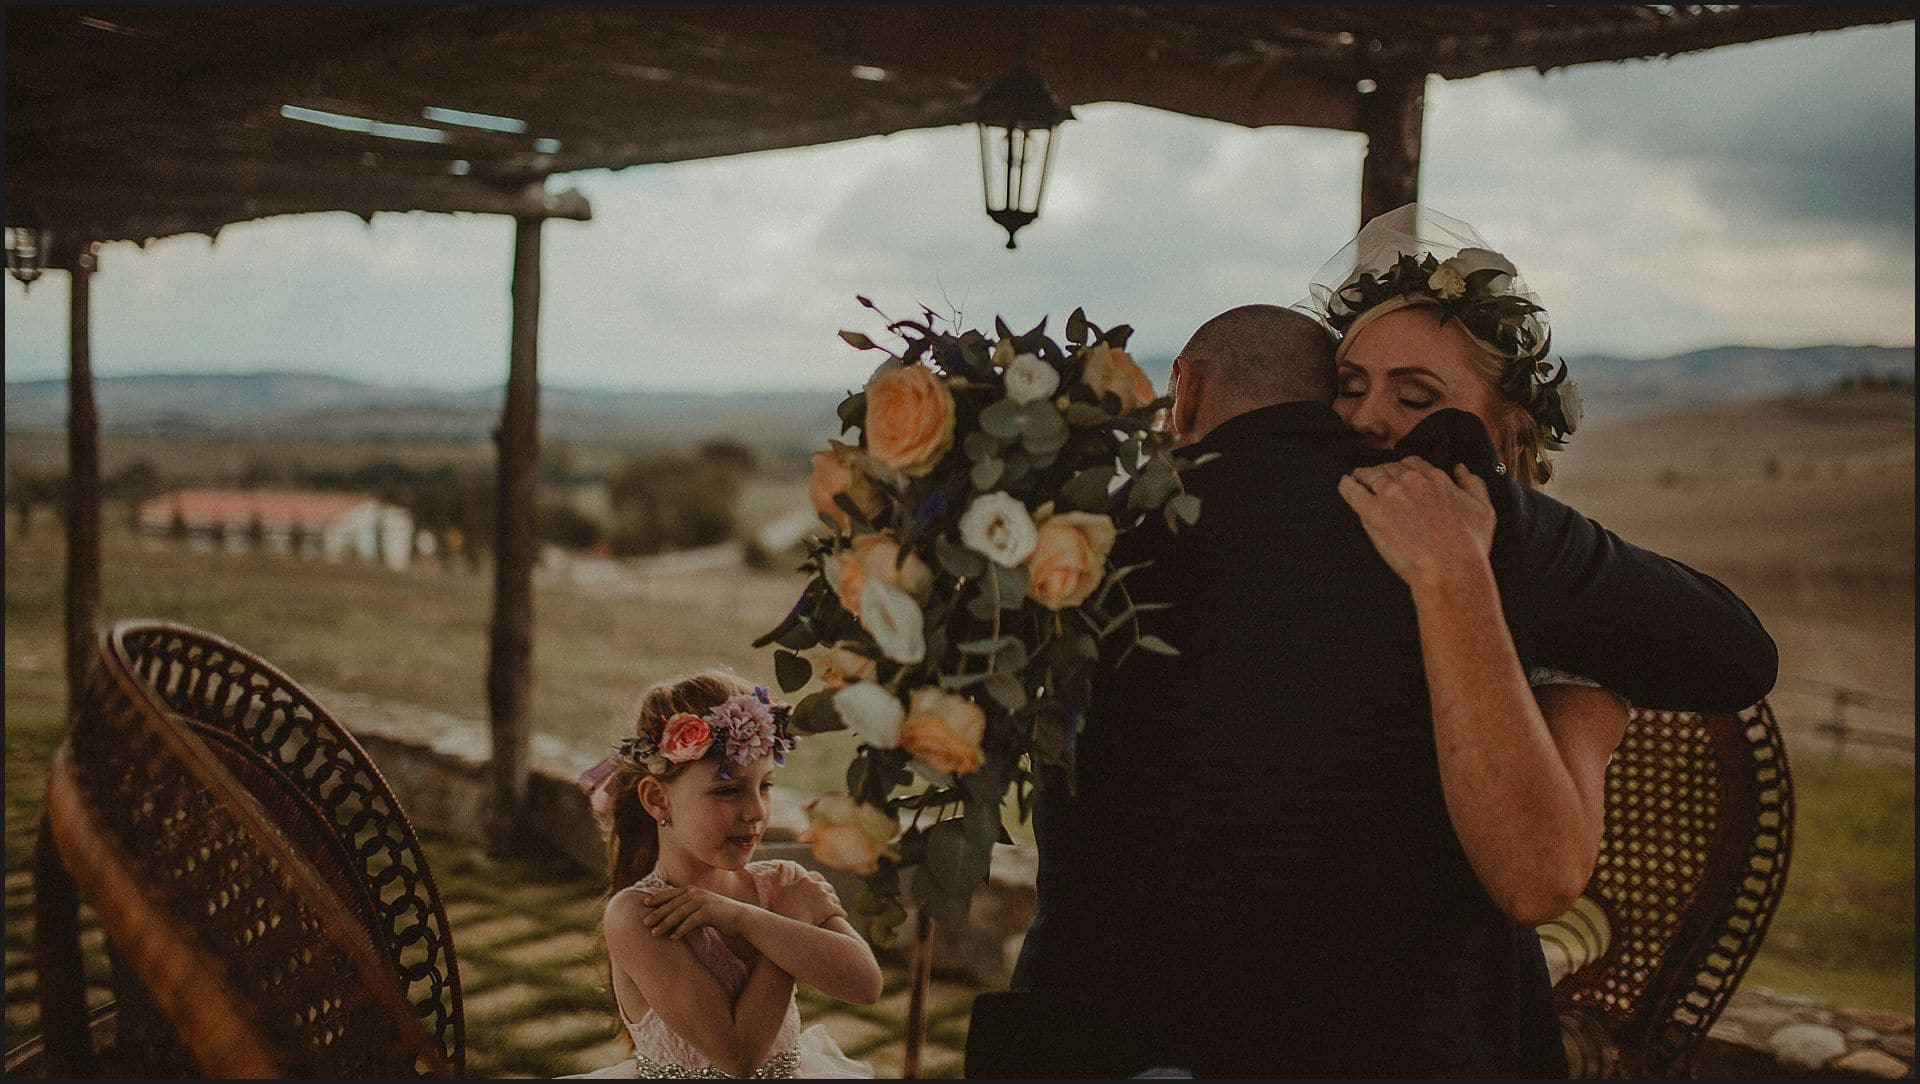 emotional moment, bride and groom, hug, flowers, locanda in tuscany, destination wedding, siena, italy